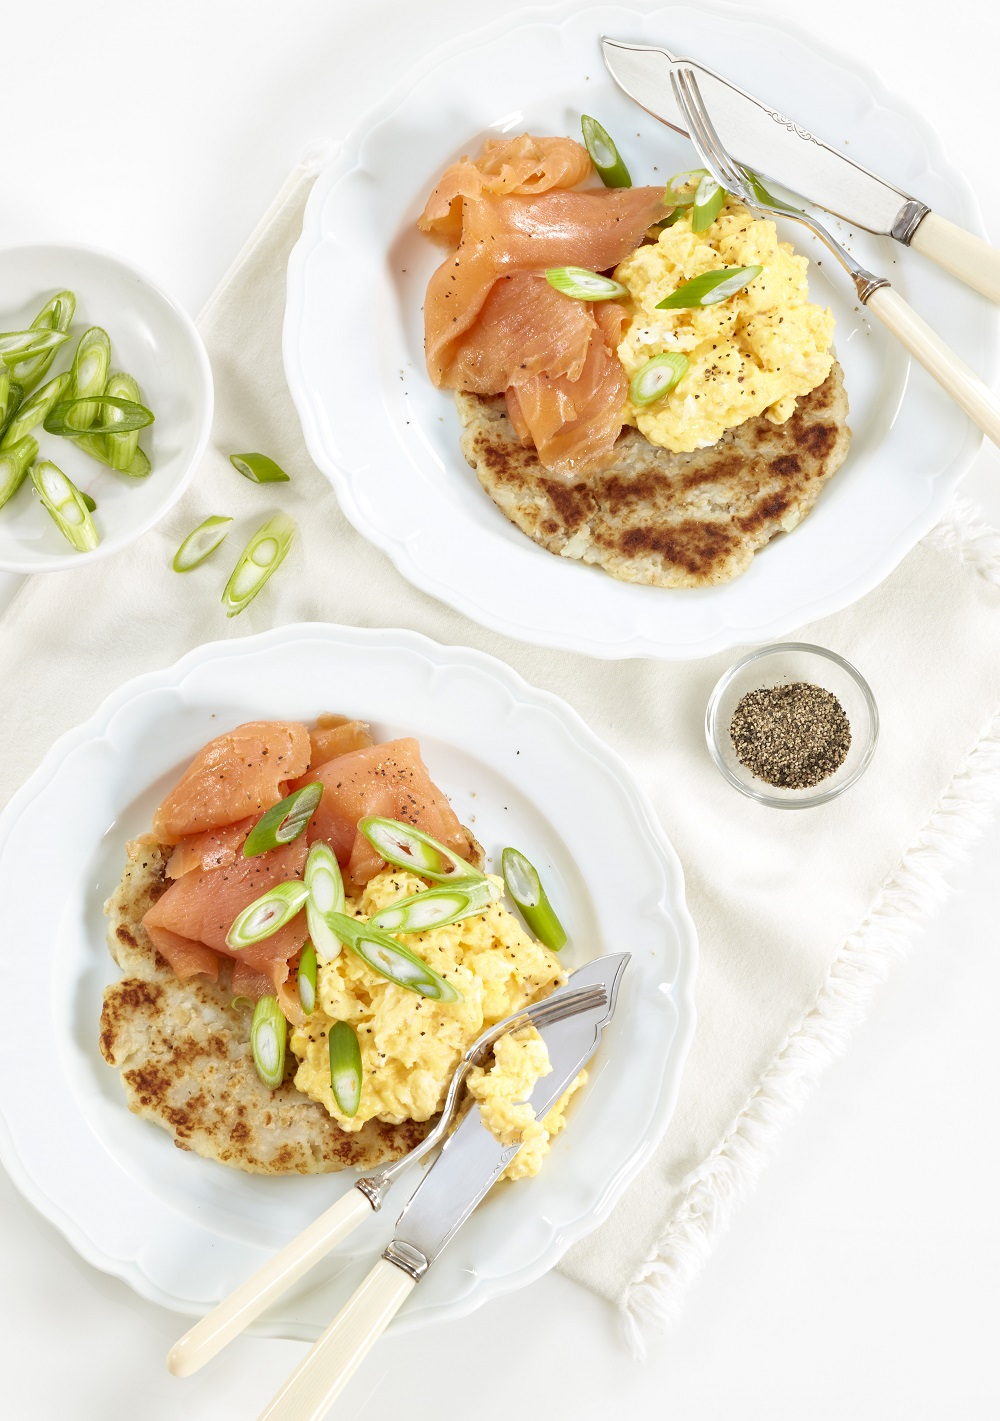 Oaty Potato Cakes And Smoked Salmon